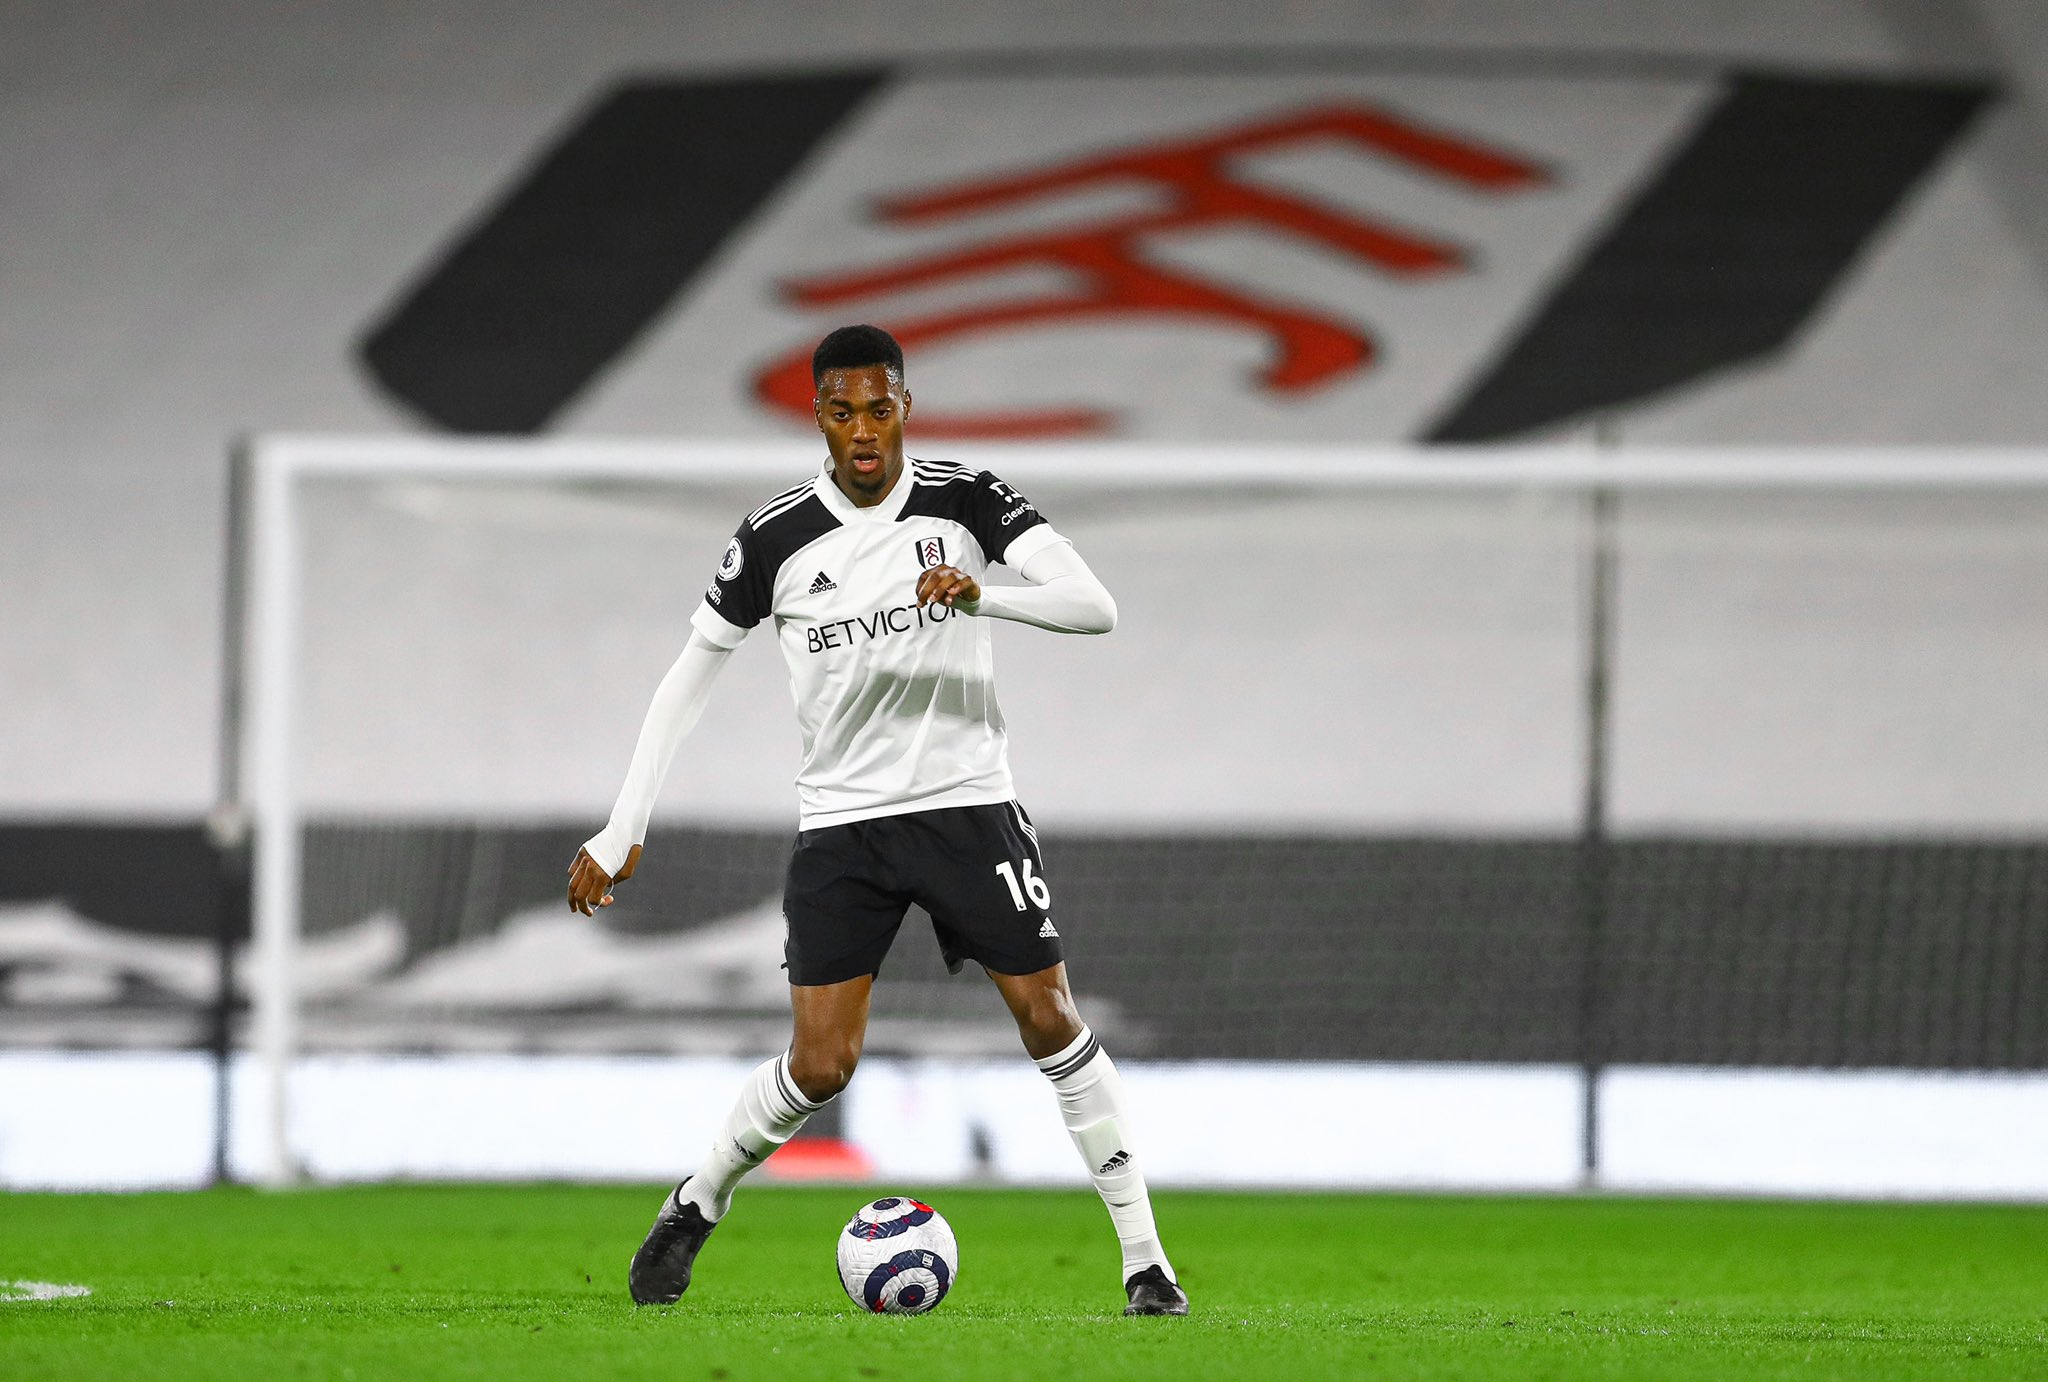 Adarabioyo's Own Goal Condemns Fulham To Home Defeat Vs Spurs; Iwobi In Action, Ajayi Benched As Everton Beat West Brom